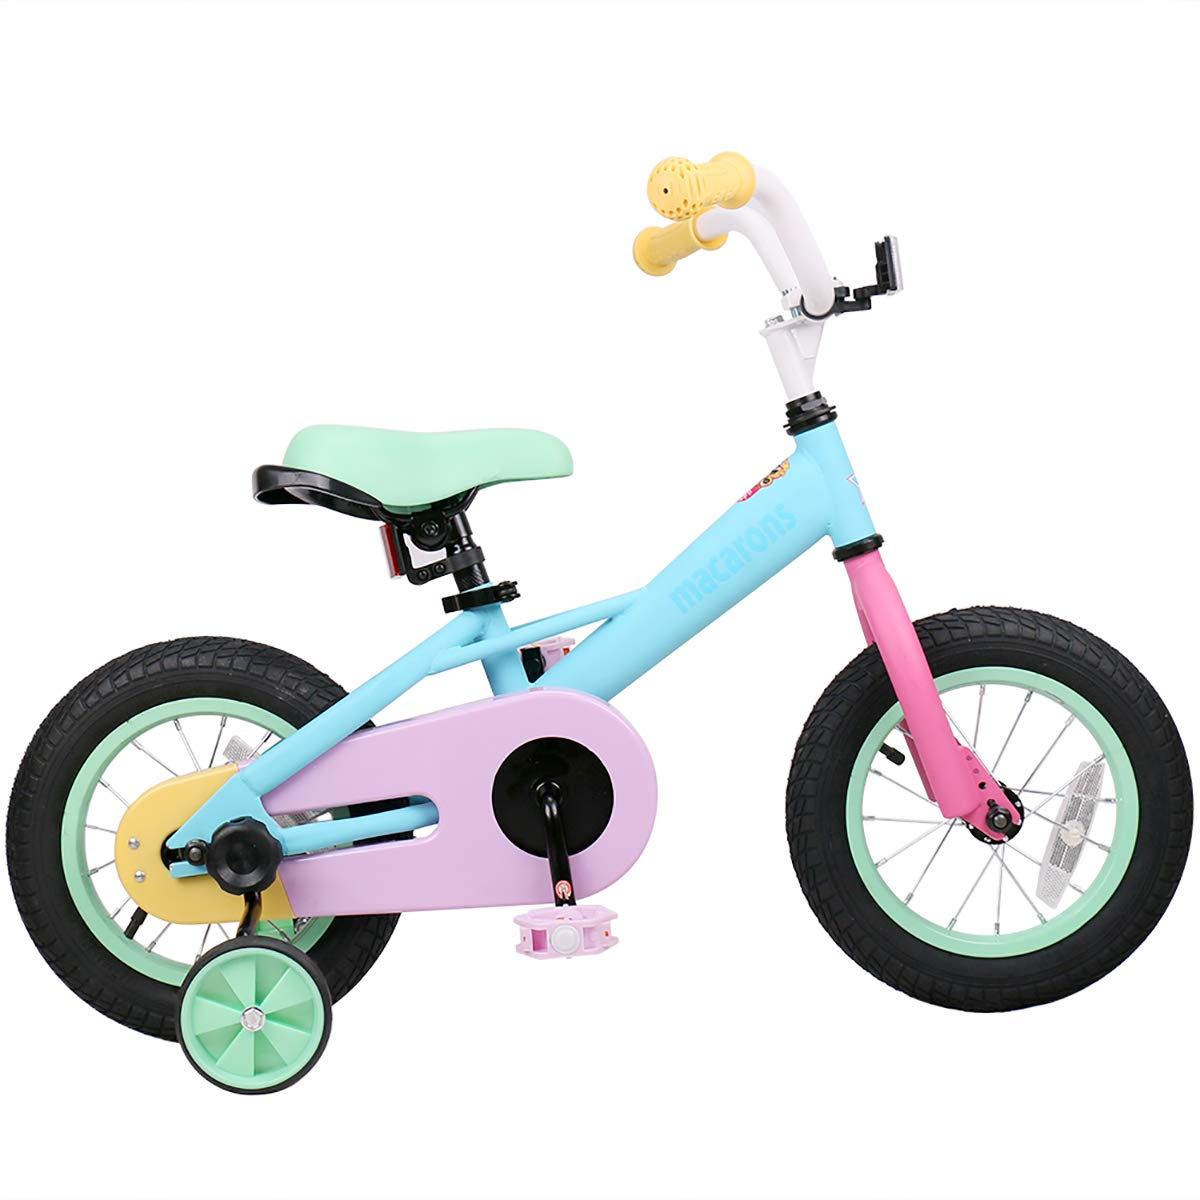 JOYSTAR 12 Inch Kids Bike for 2 3 4 Years Girls, Child Bicycle with Training Wheels & Coaster Brake for 2-4 Years Kids, 85% Assembled (12 inch)